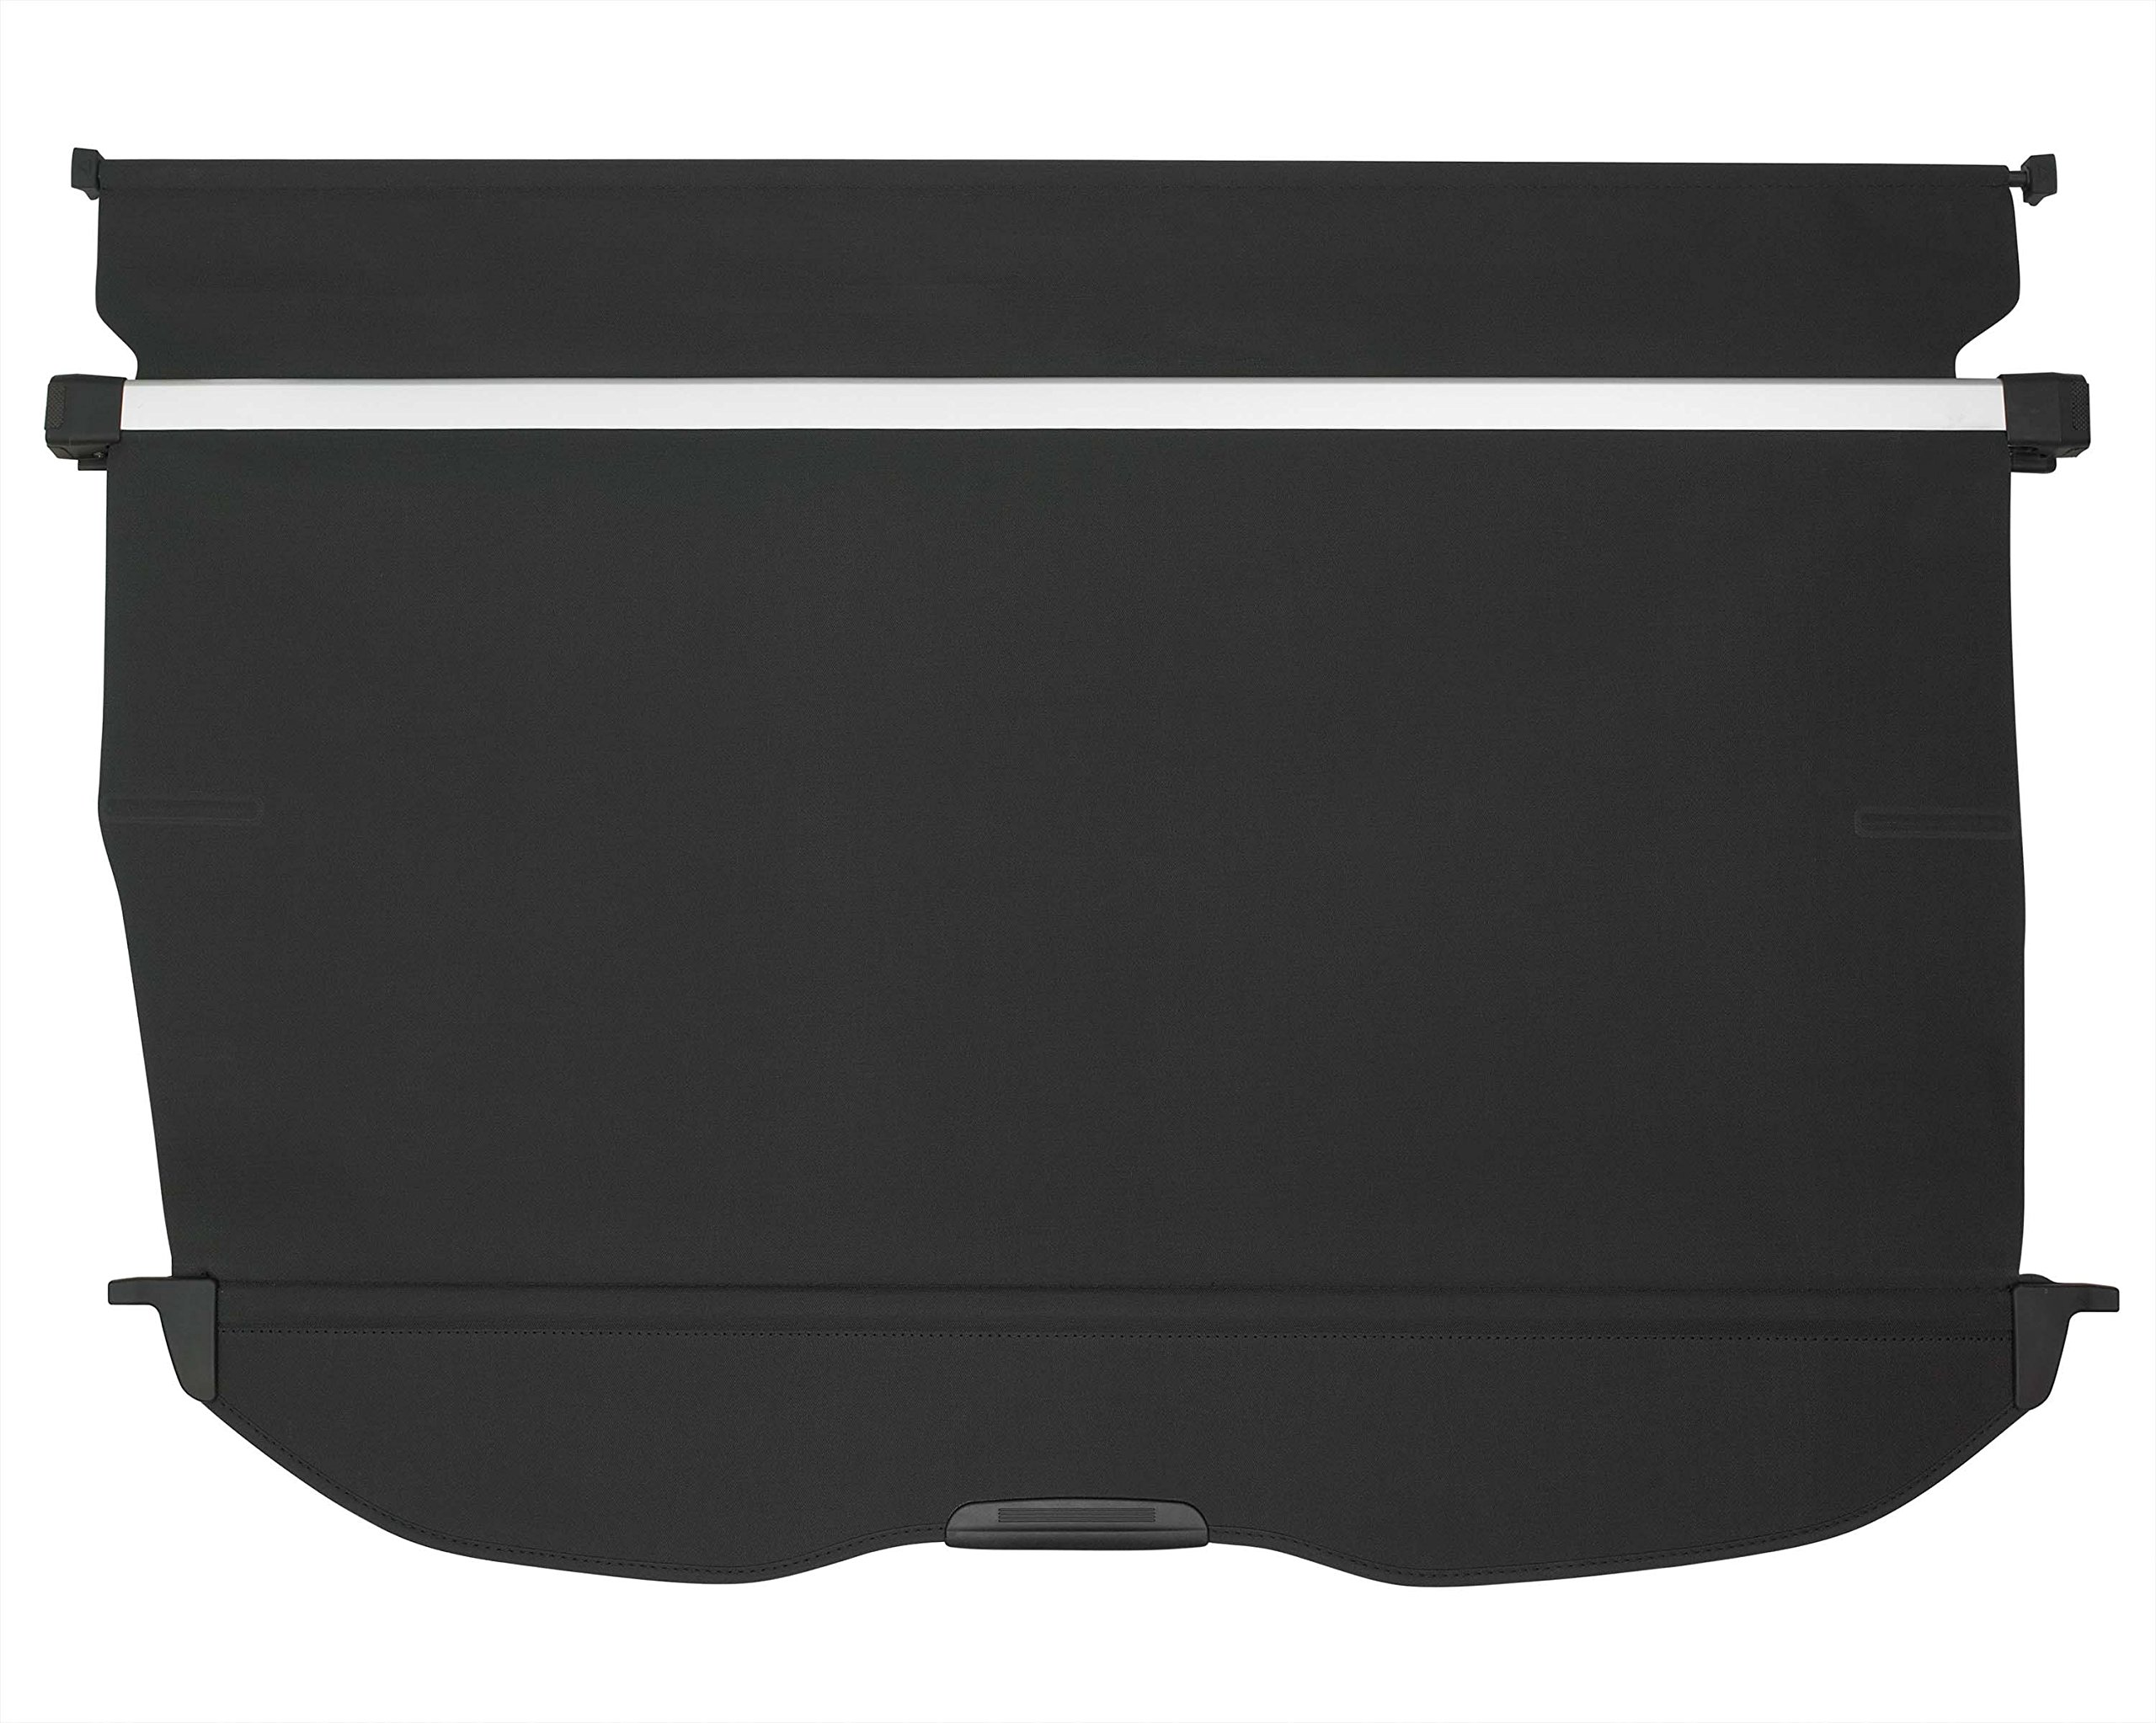 Subaru 65550SG000VH Luggage Compartment Cover Manual Rear Gate by Subaru